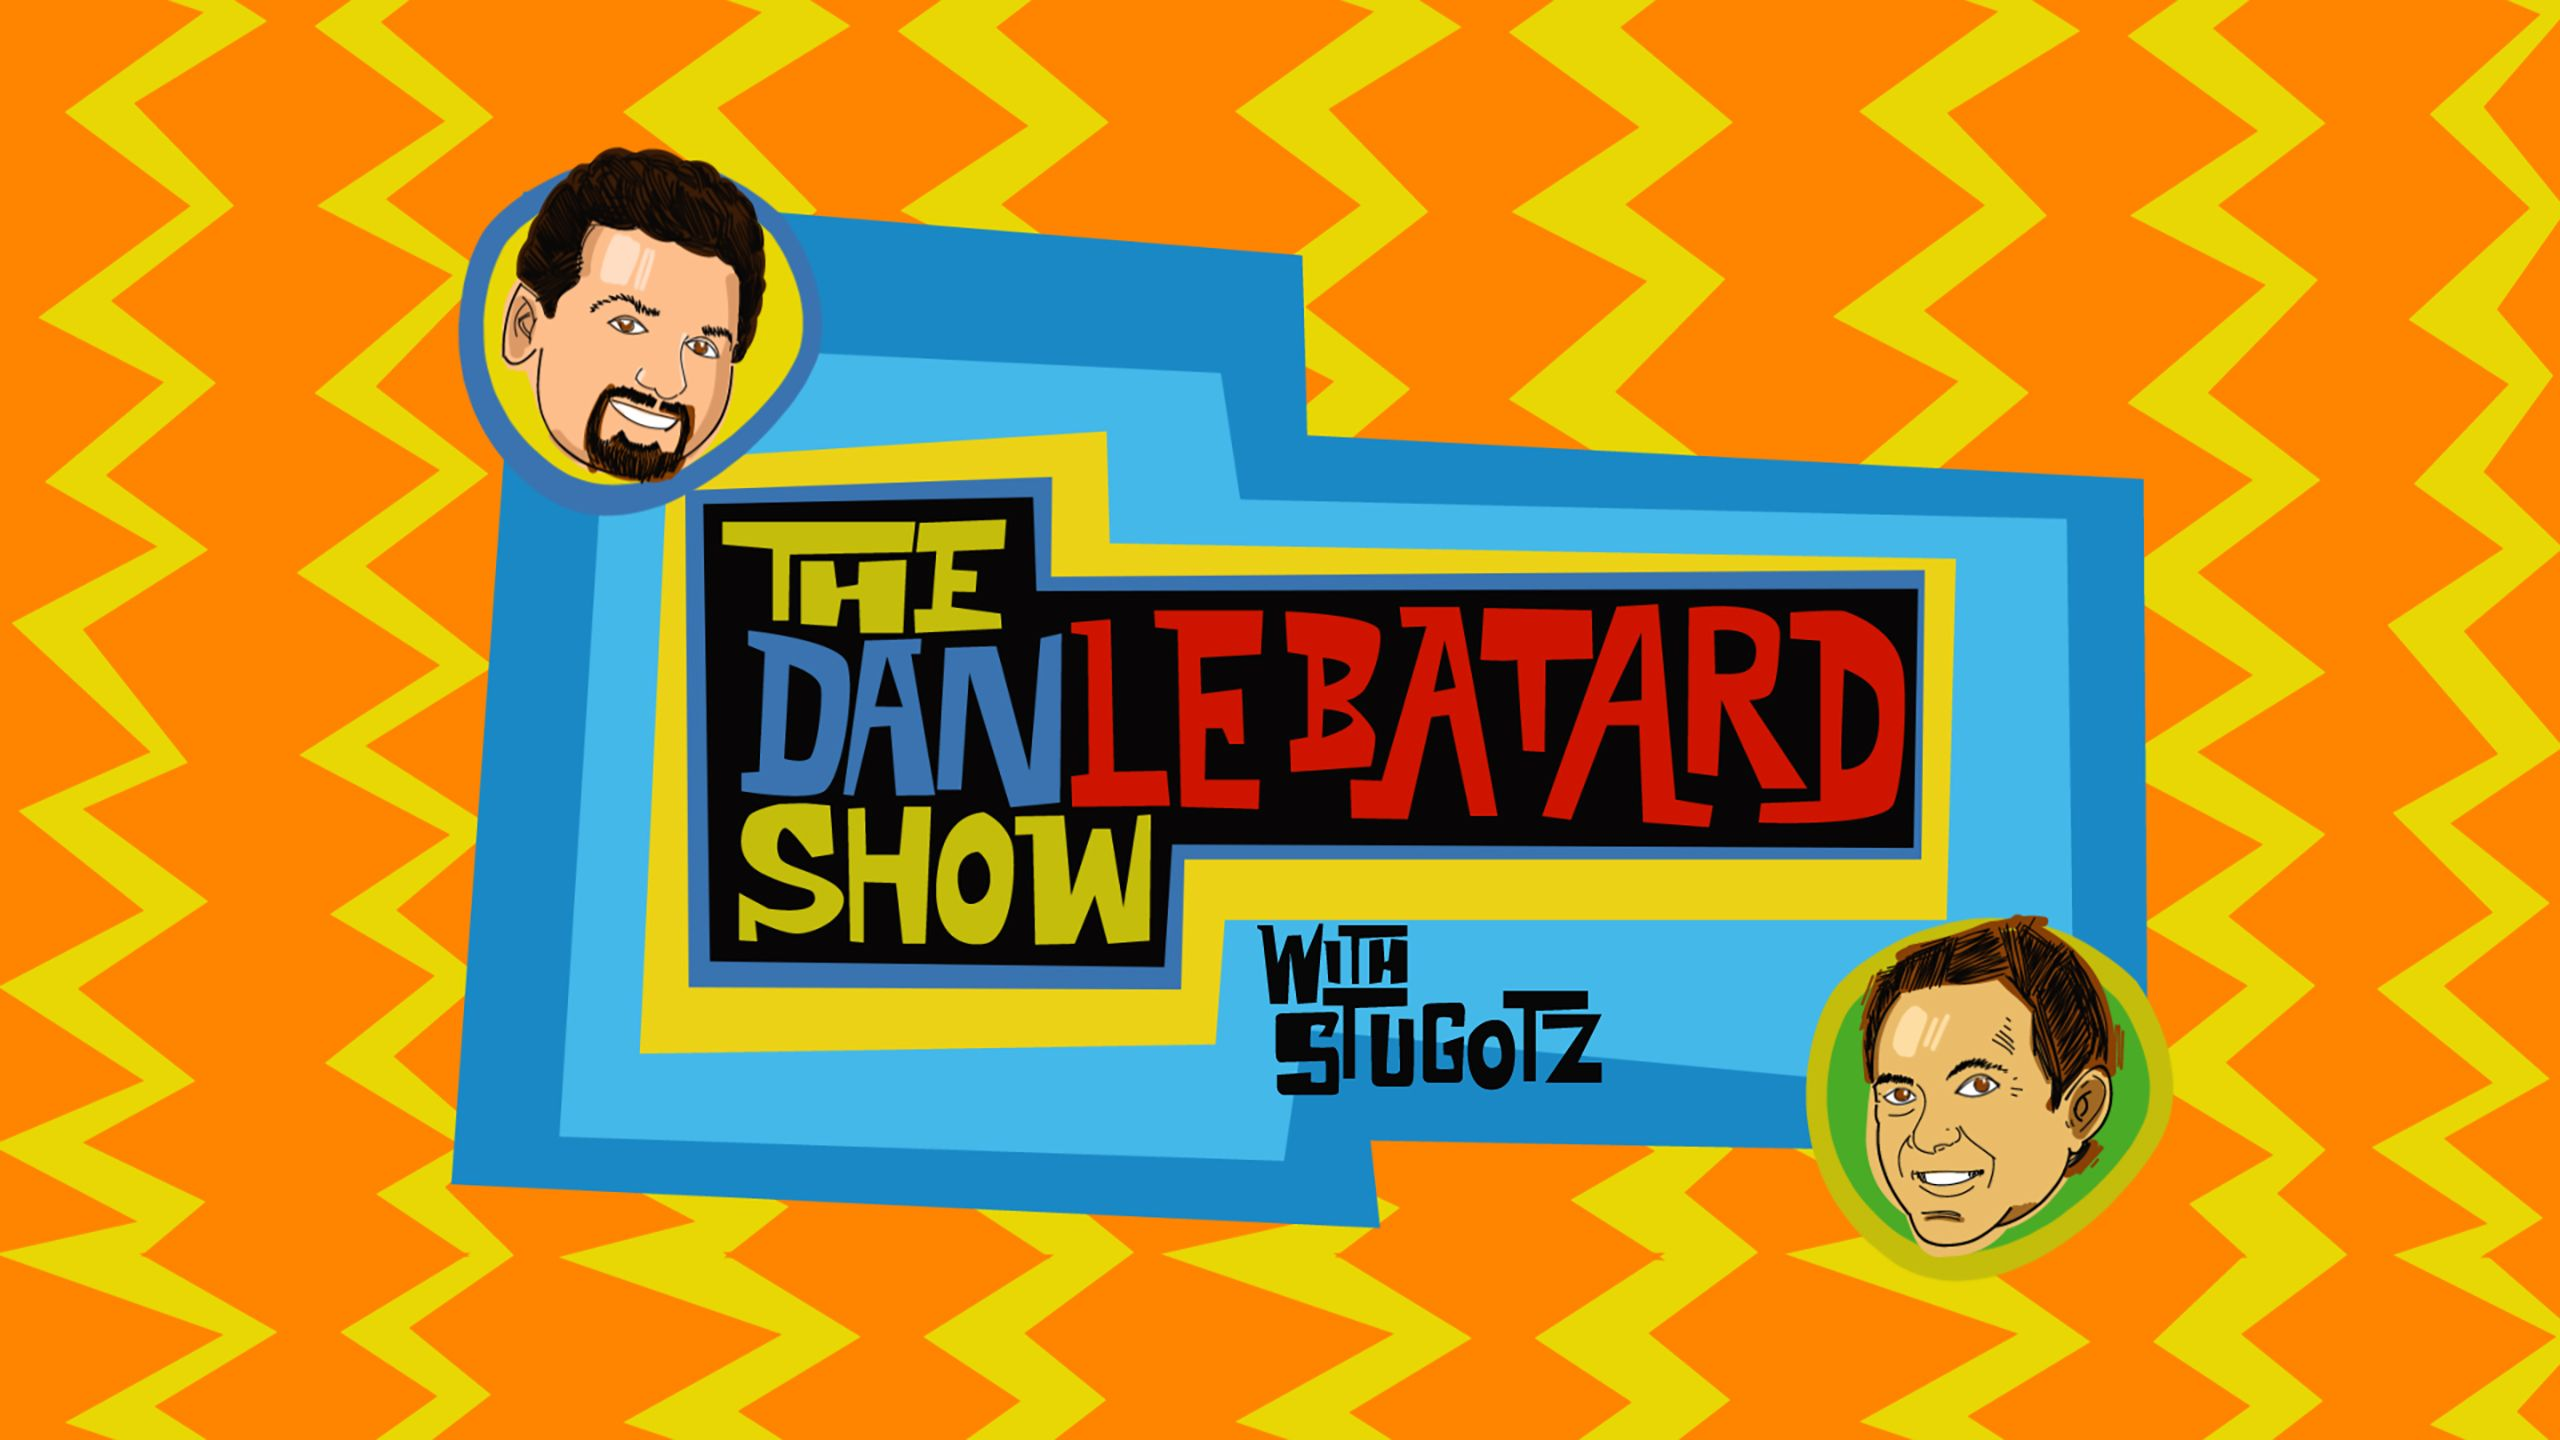 The Dan Le Batard Show with Stugotz Presented by Progressivee